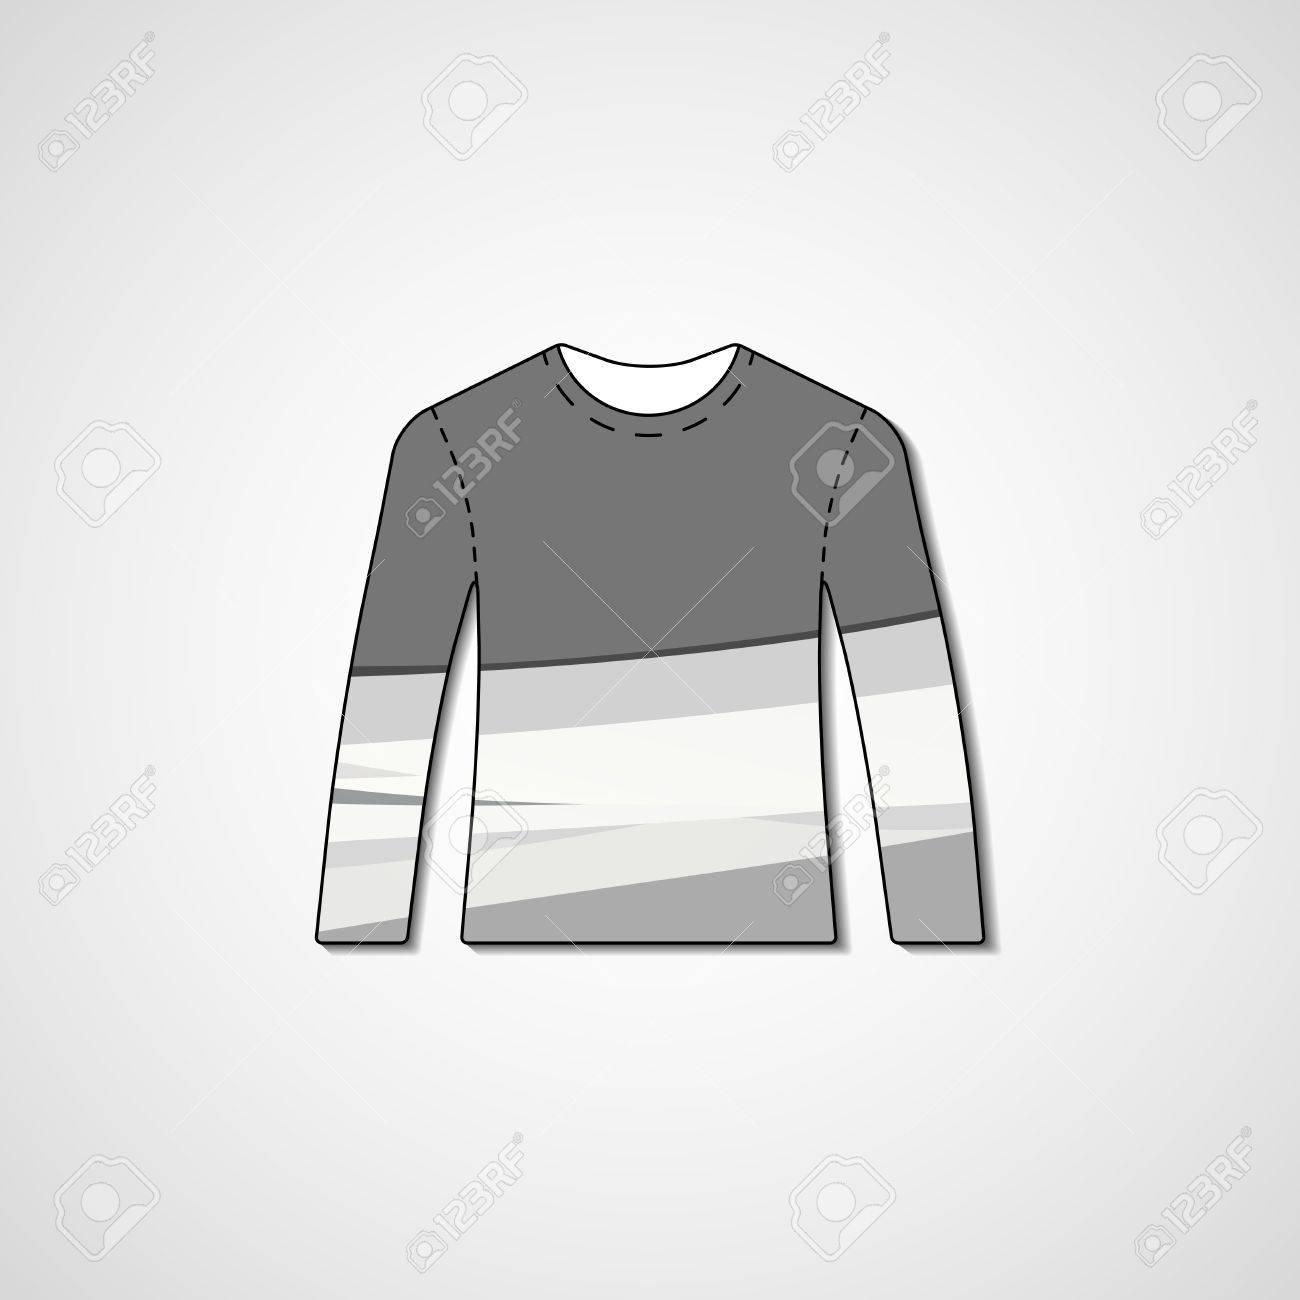 Abstract Illustration On Sweater, Template Editable. Royalty Free ...